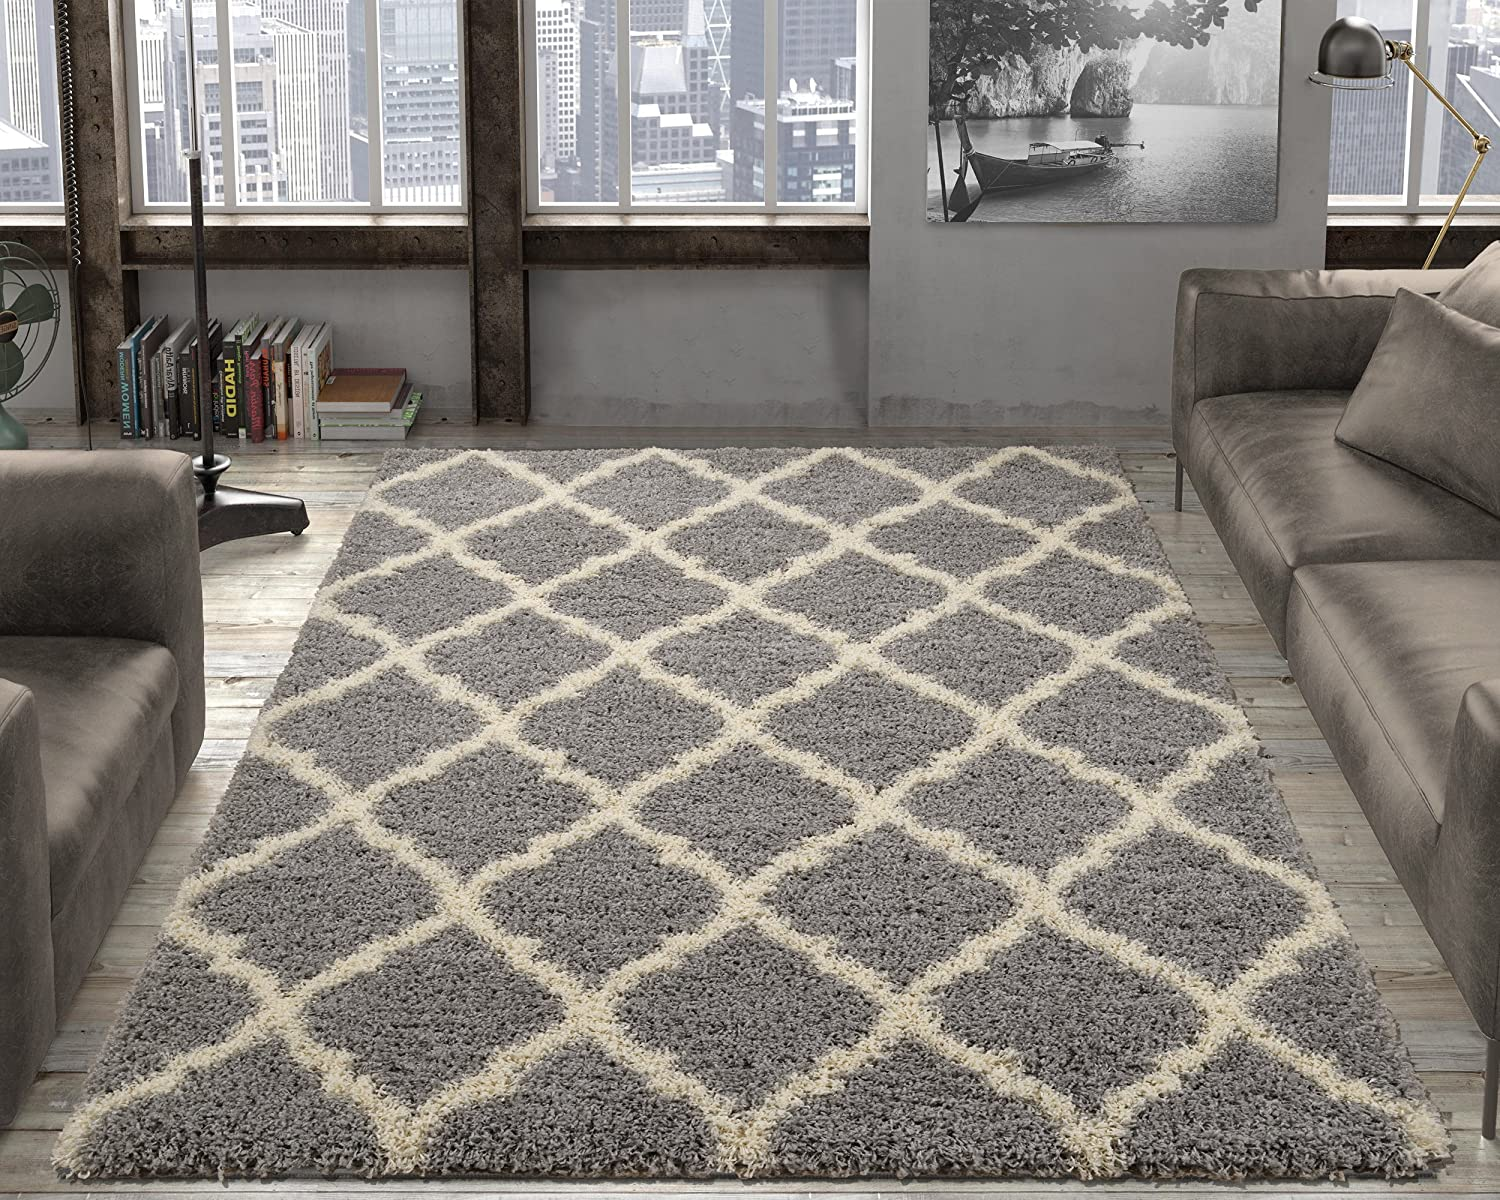 Top 5 Living Room Rugs: Buying Guide & Reviews 8